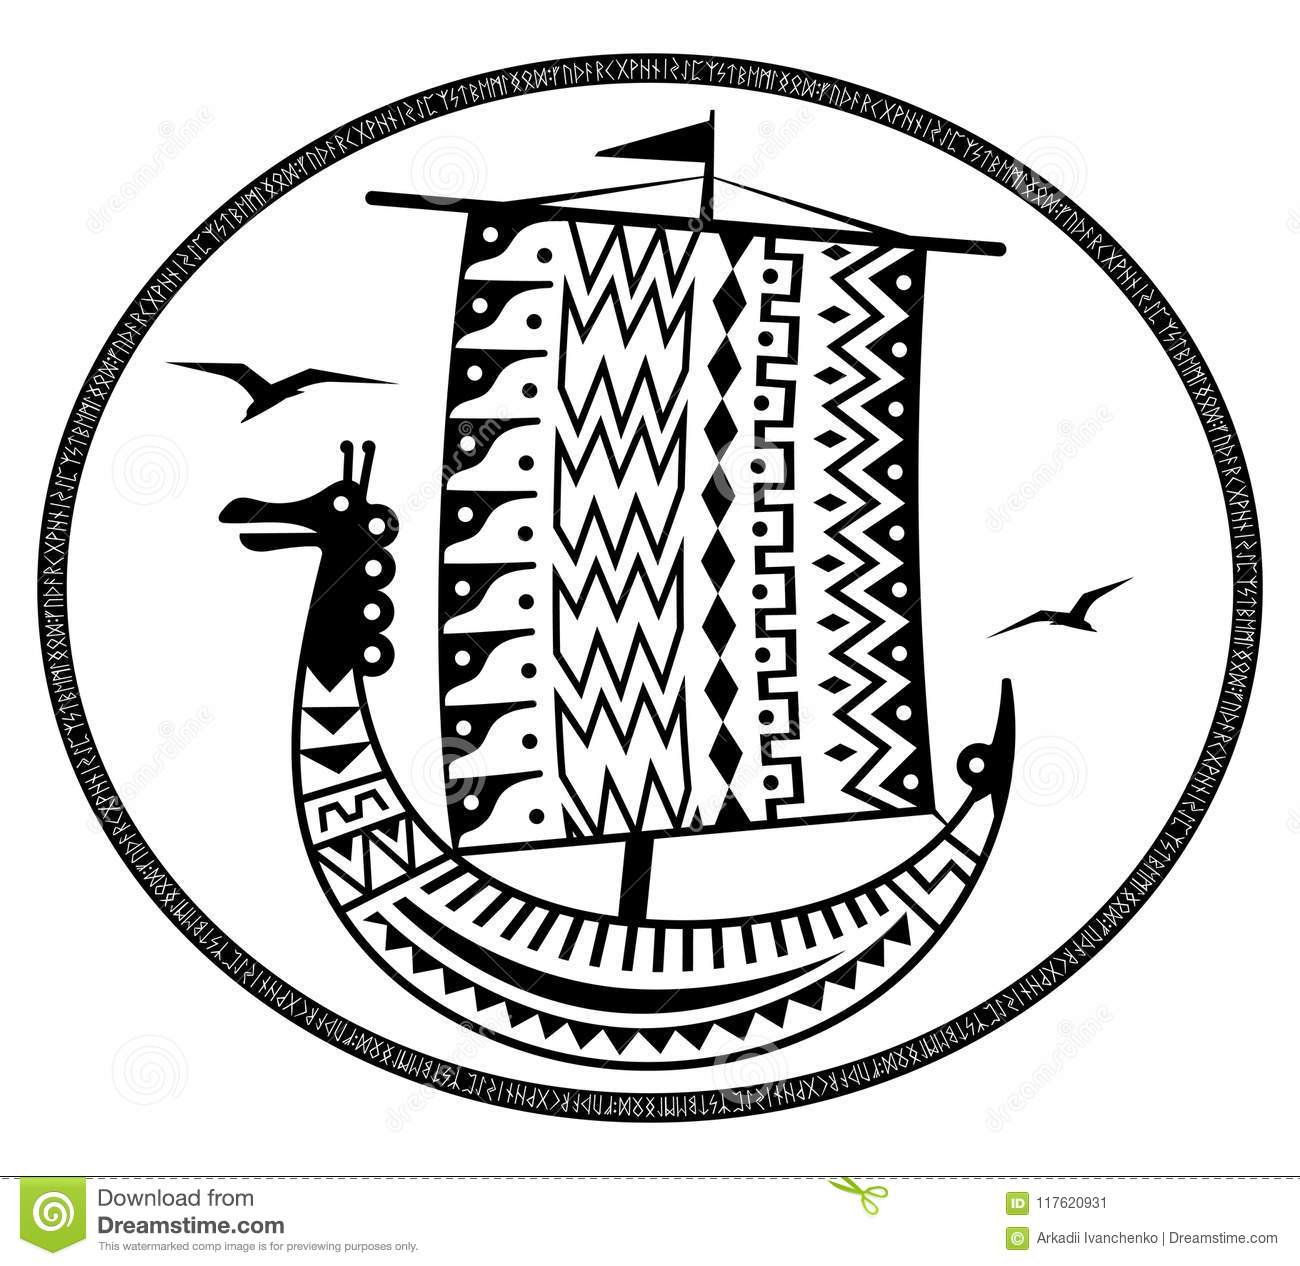 An Ancient Scandinavian Image Of A Viking Ship Decorated With An